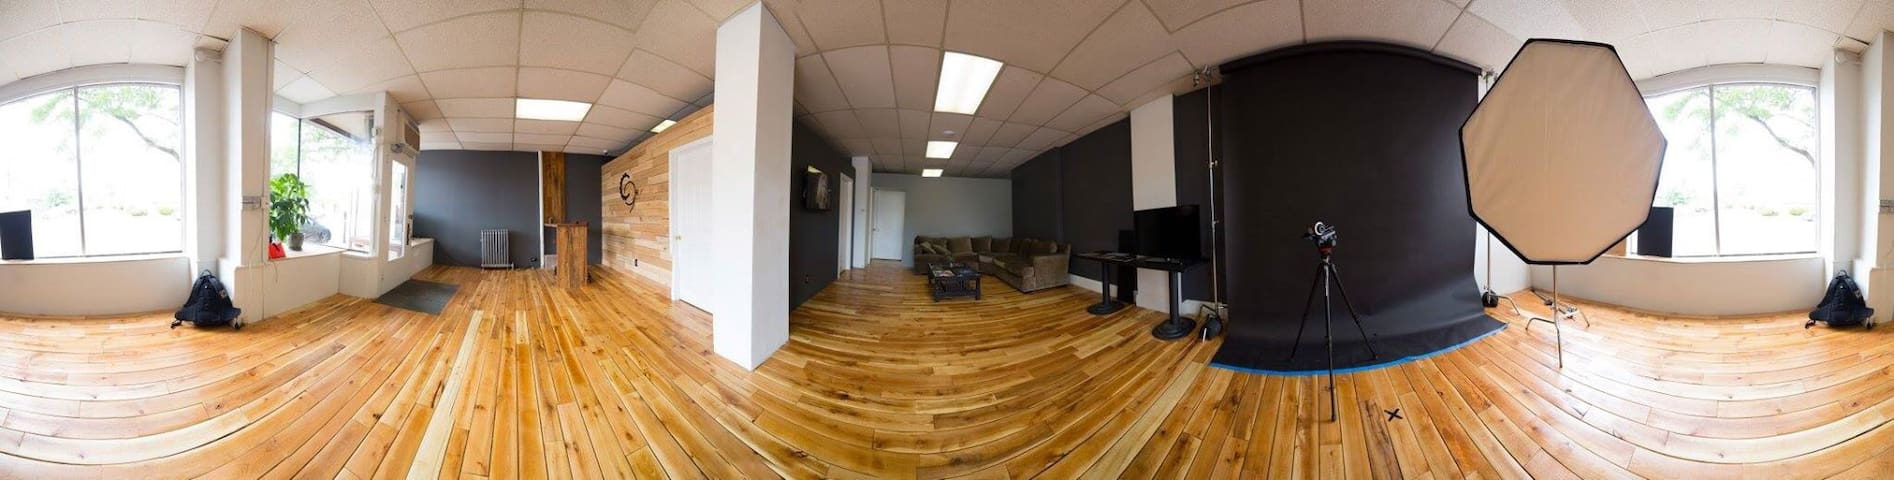 Newly Renovated Creative Studio For RNC Business - Lakewood - Loft